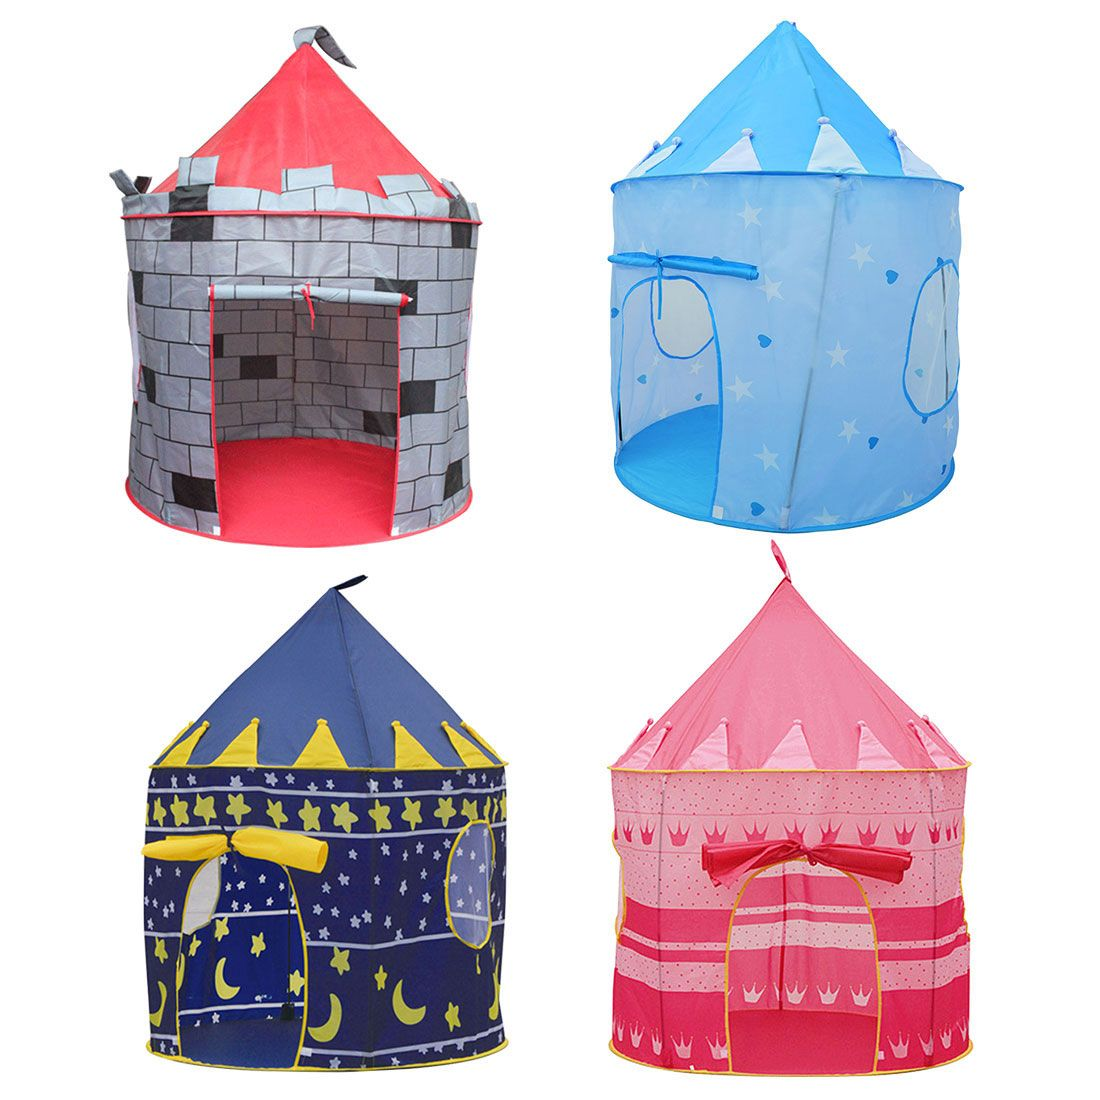 24a0119e6 4 Colors Play Tent Portable Foldable Tipi Prince Folding Tent Children Boy  Castle Cubby Play House